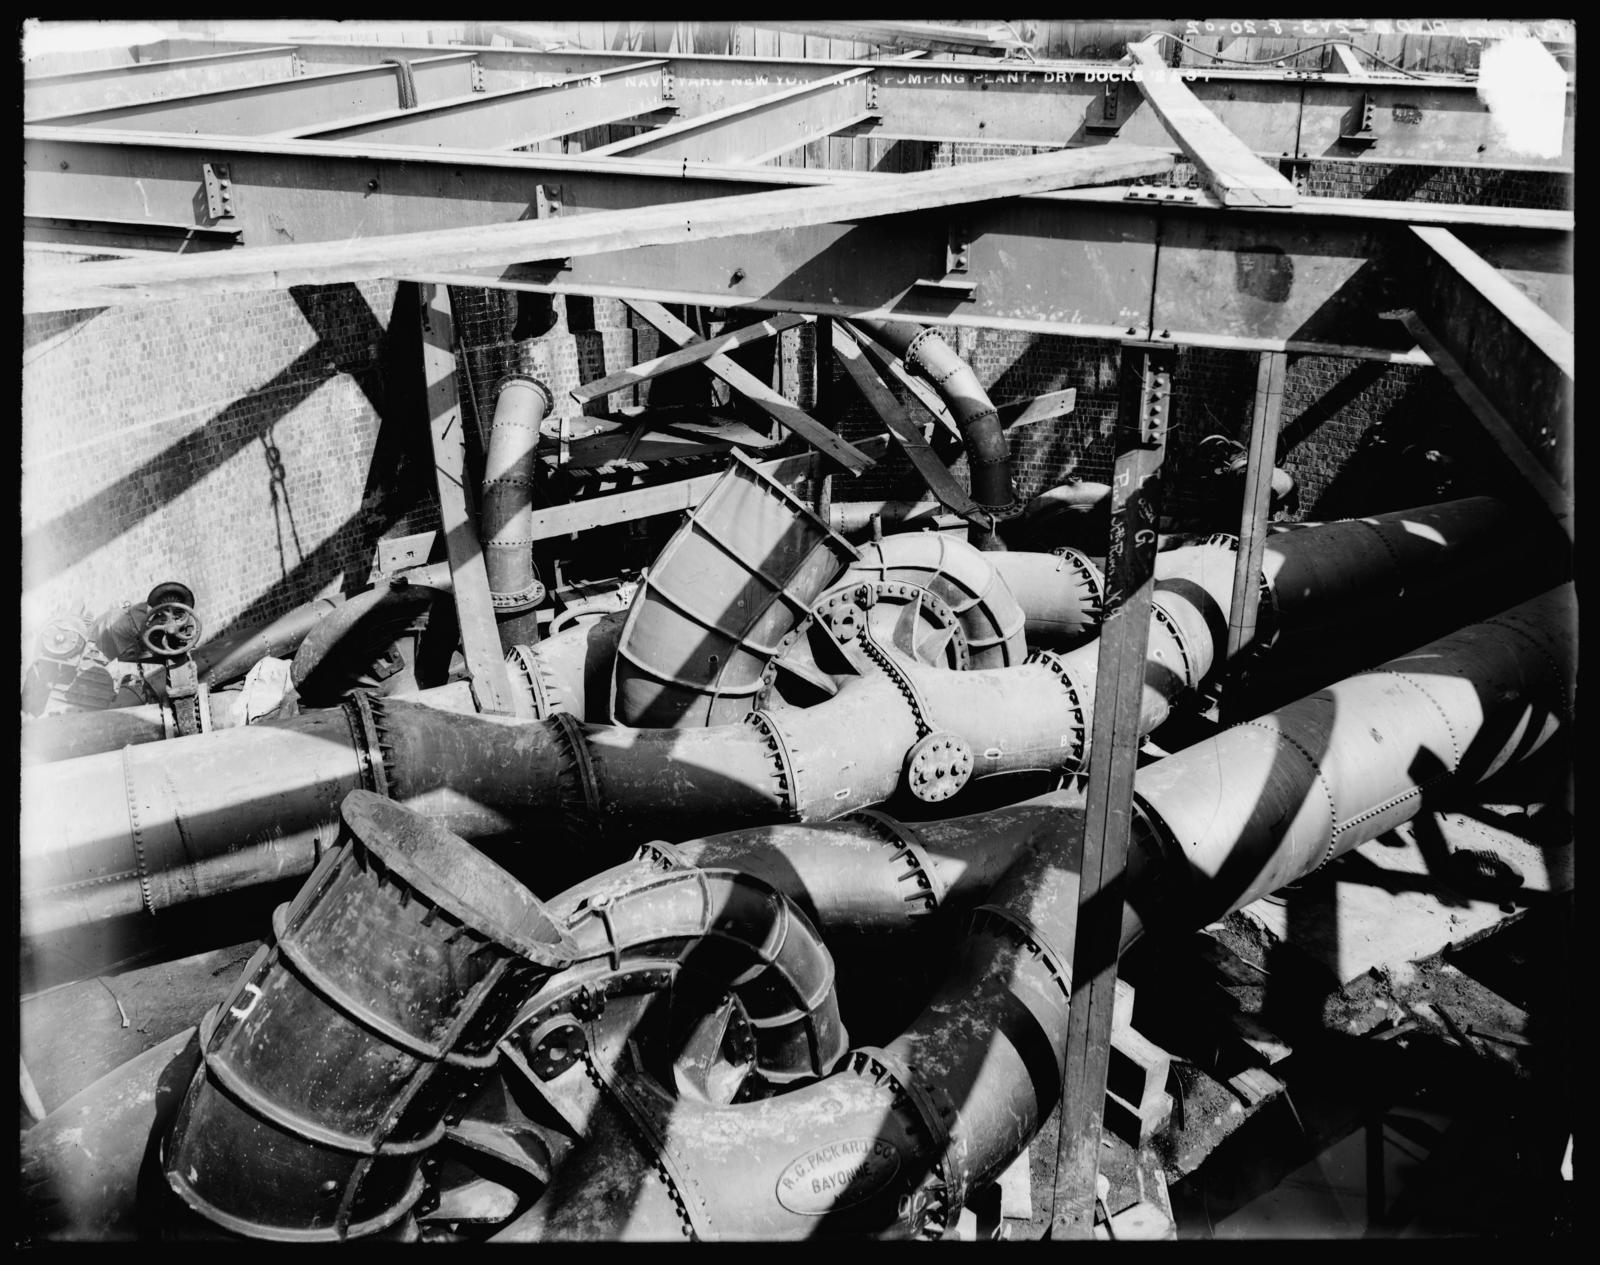 Pumping Plant, Dry Docks 2 and 3